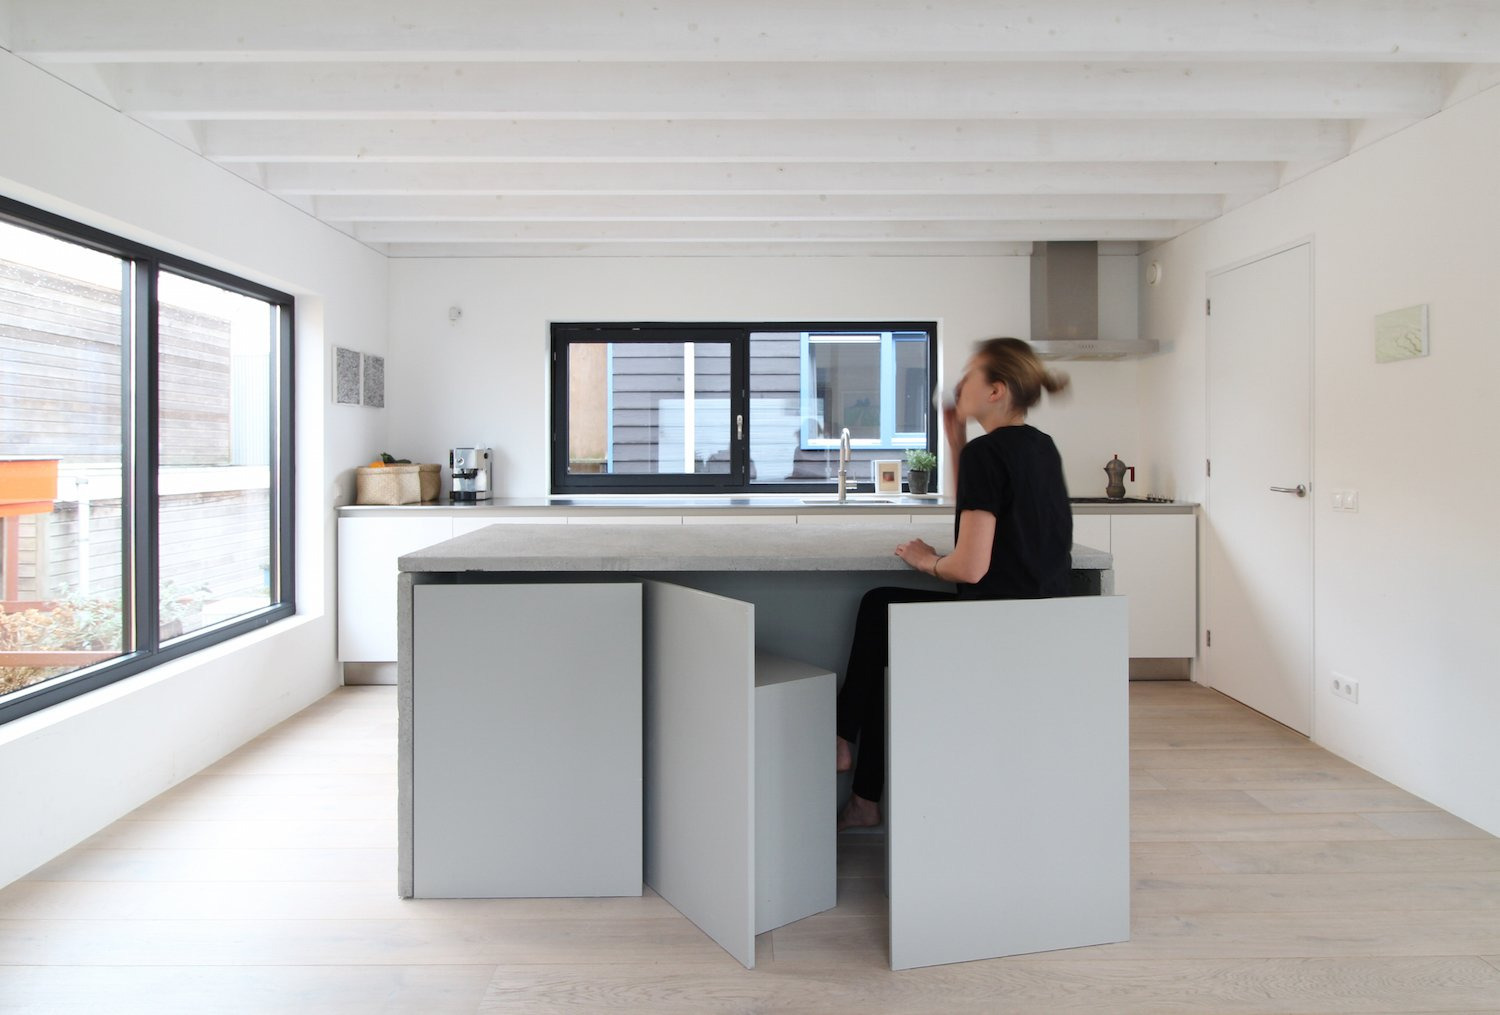 Built-in storage and space-saving furnishings, such as seating that stores flush beneath a table, reduce visual clutter without compromising functionality.